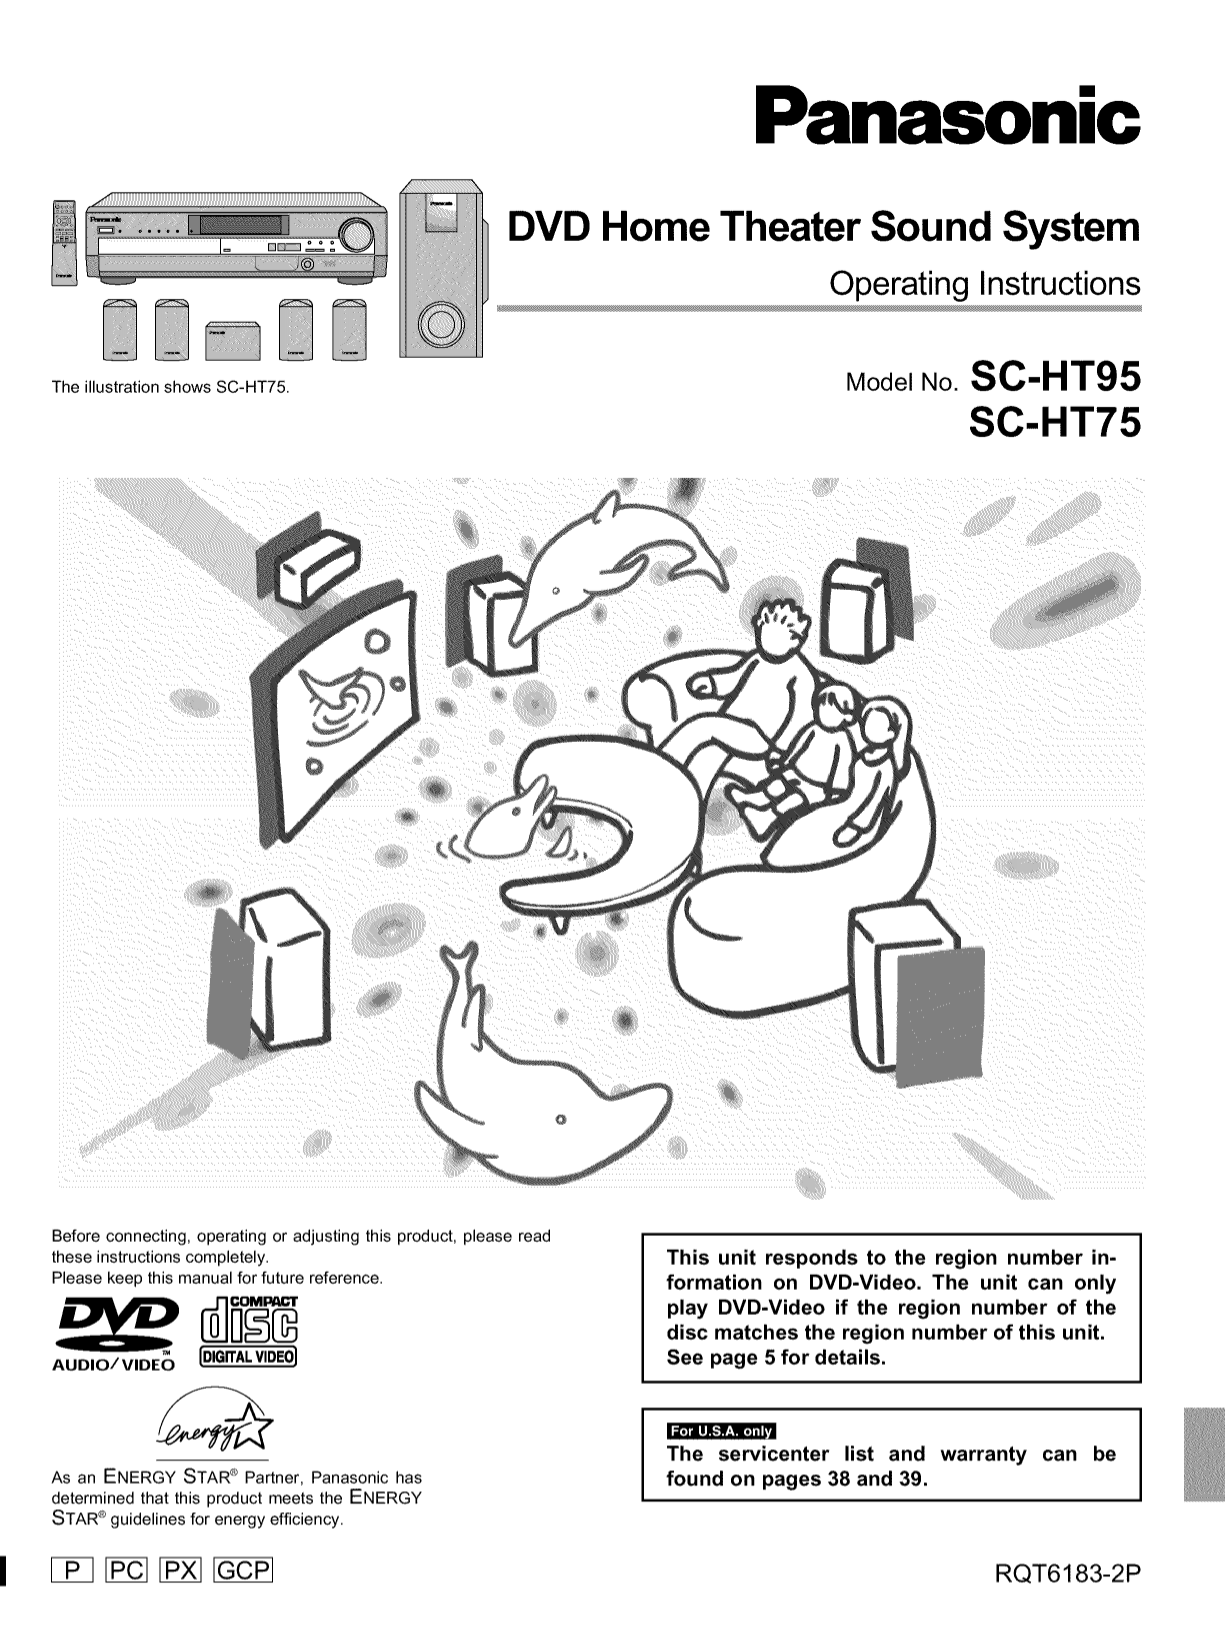 Download Free For Panasonic Sc Ht75 Home Theater Manual